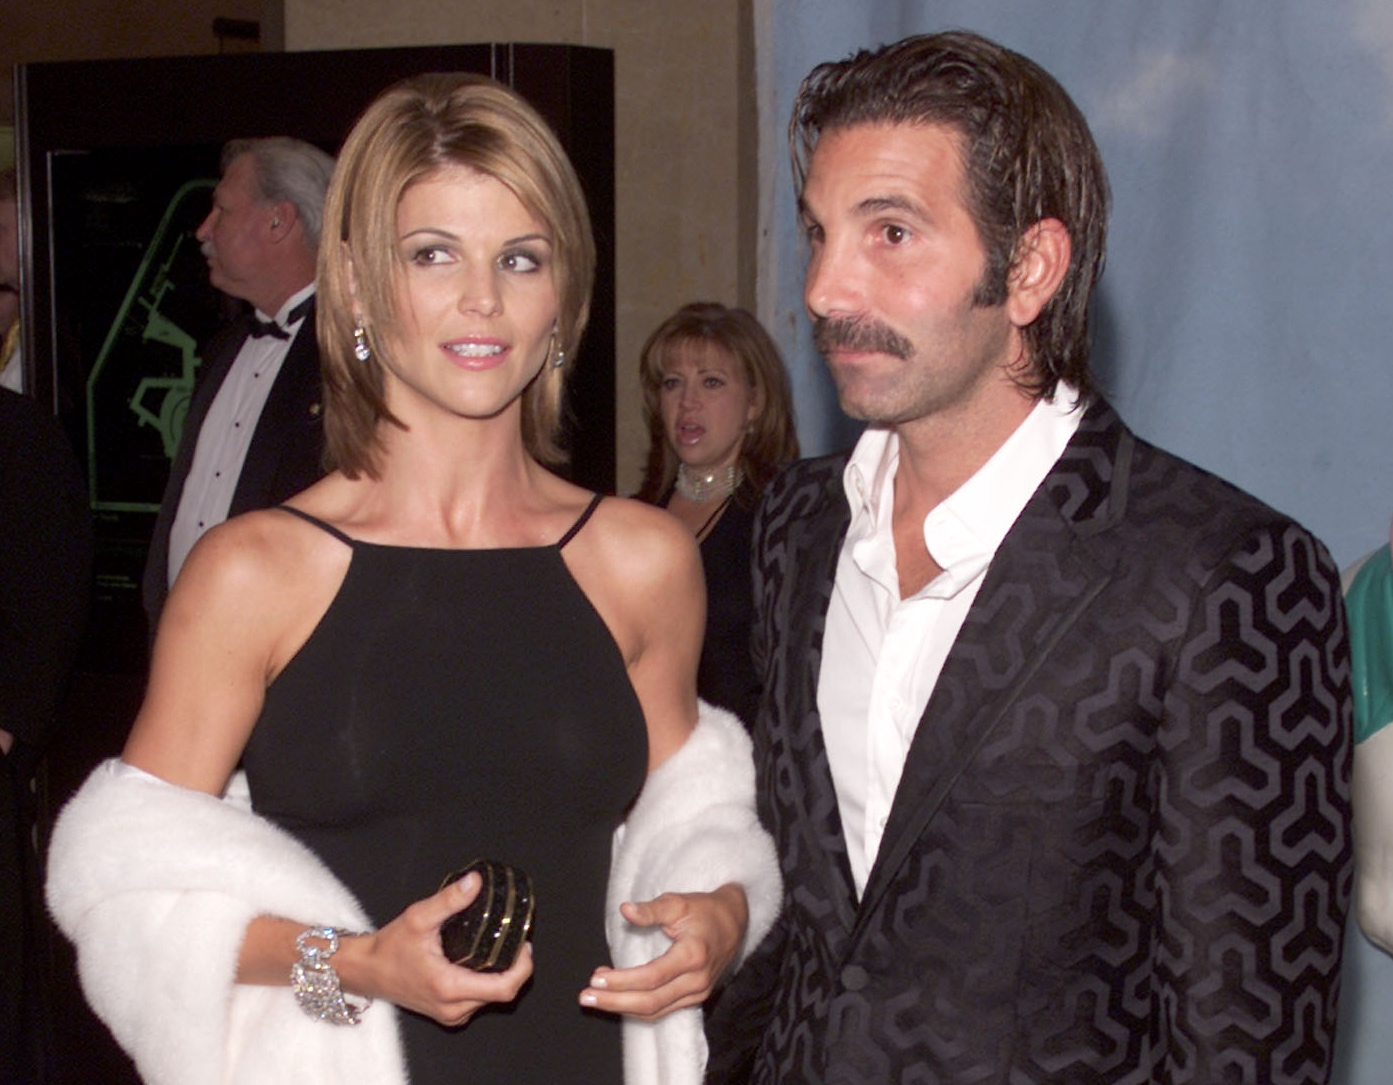 Lori Loughlin's Husband Mossimo Giannulli Released From Prison